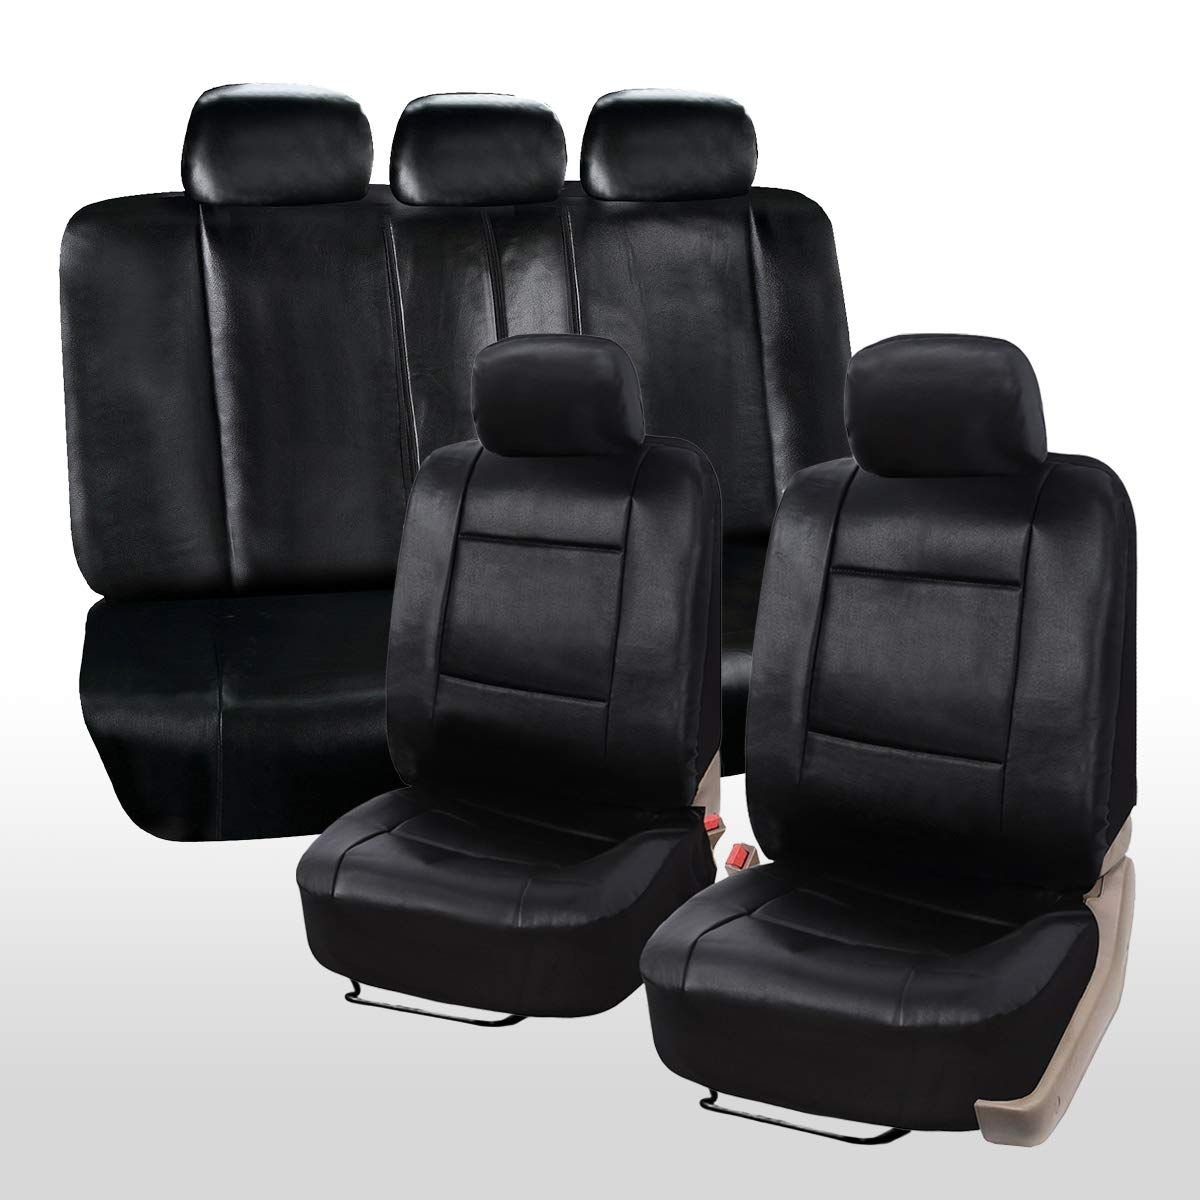 Zone Tech Universal Leather Car Seat Covers 11Piece